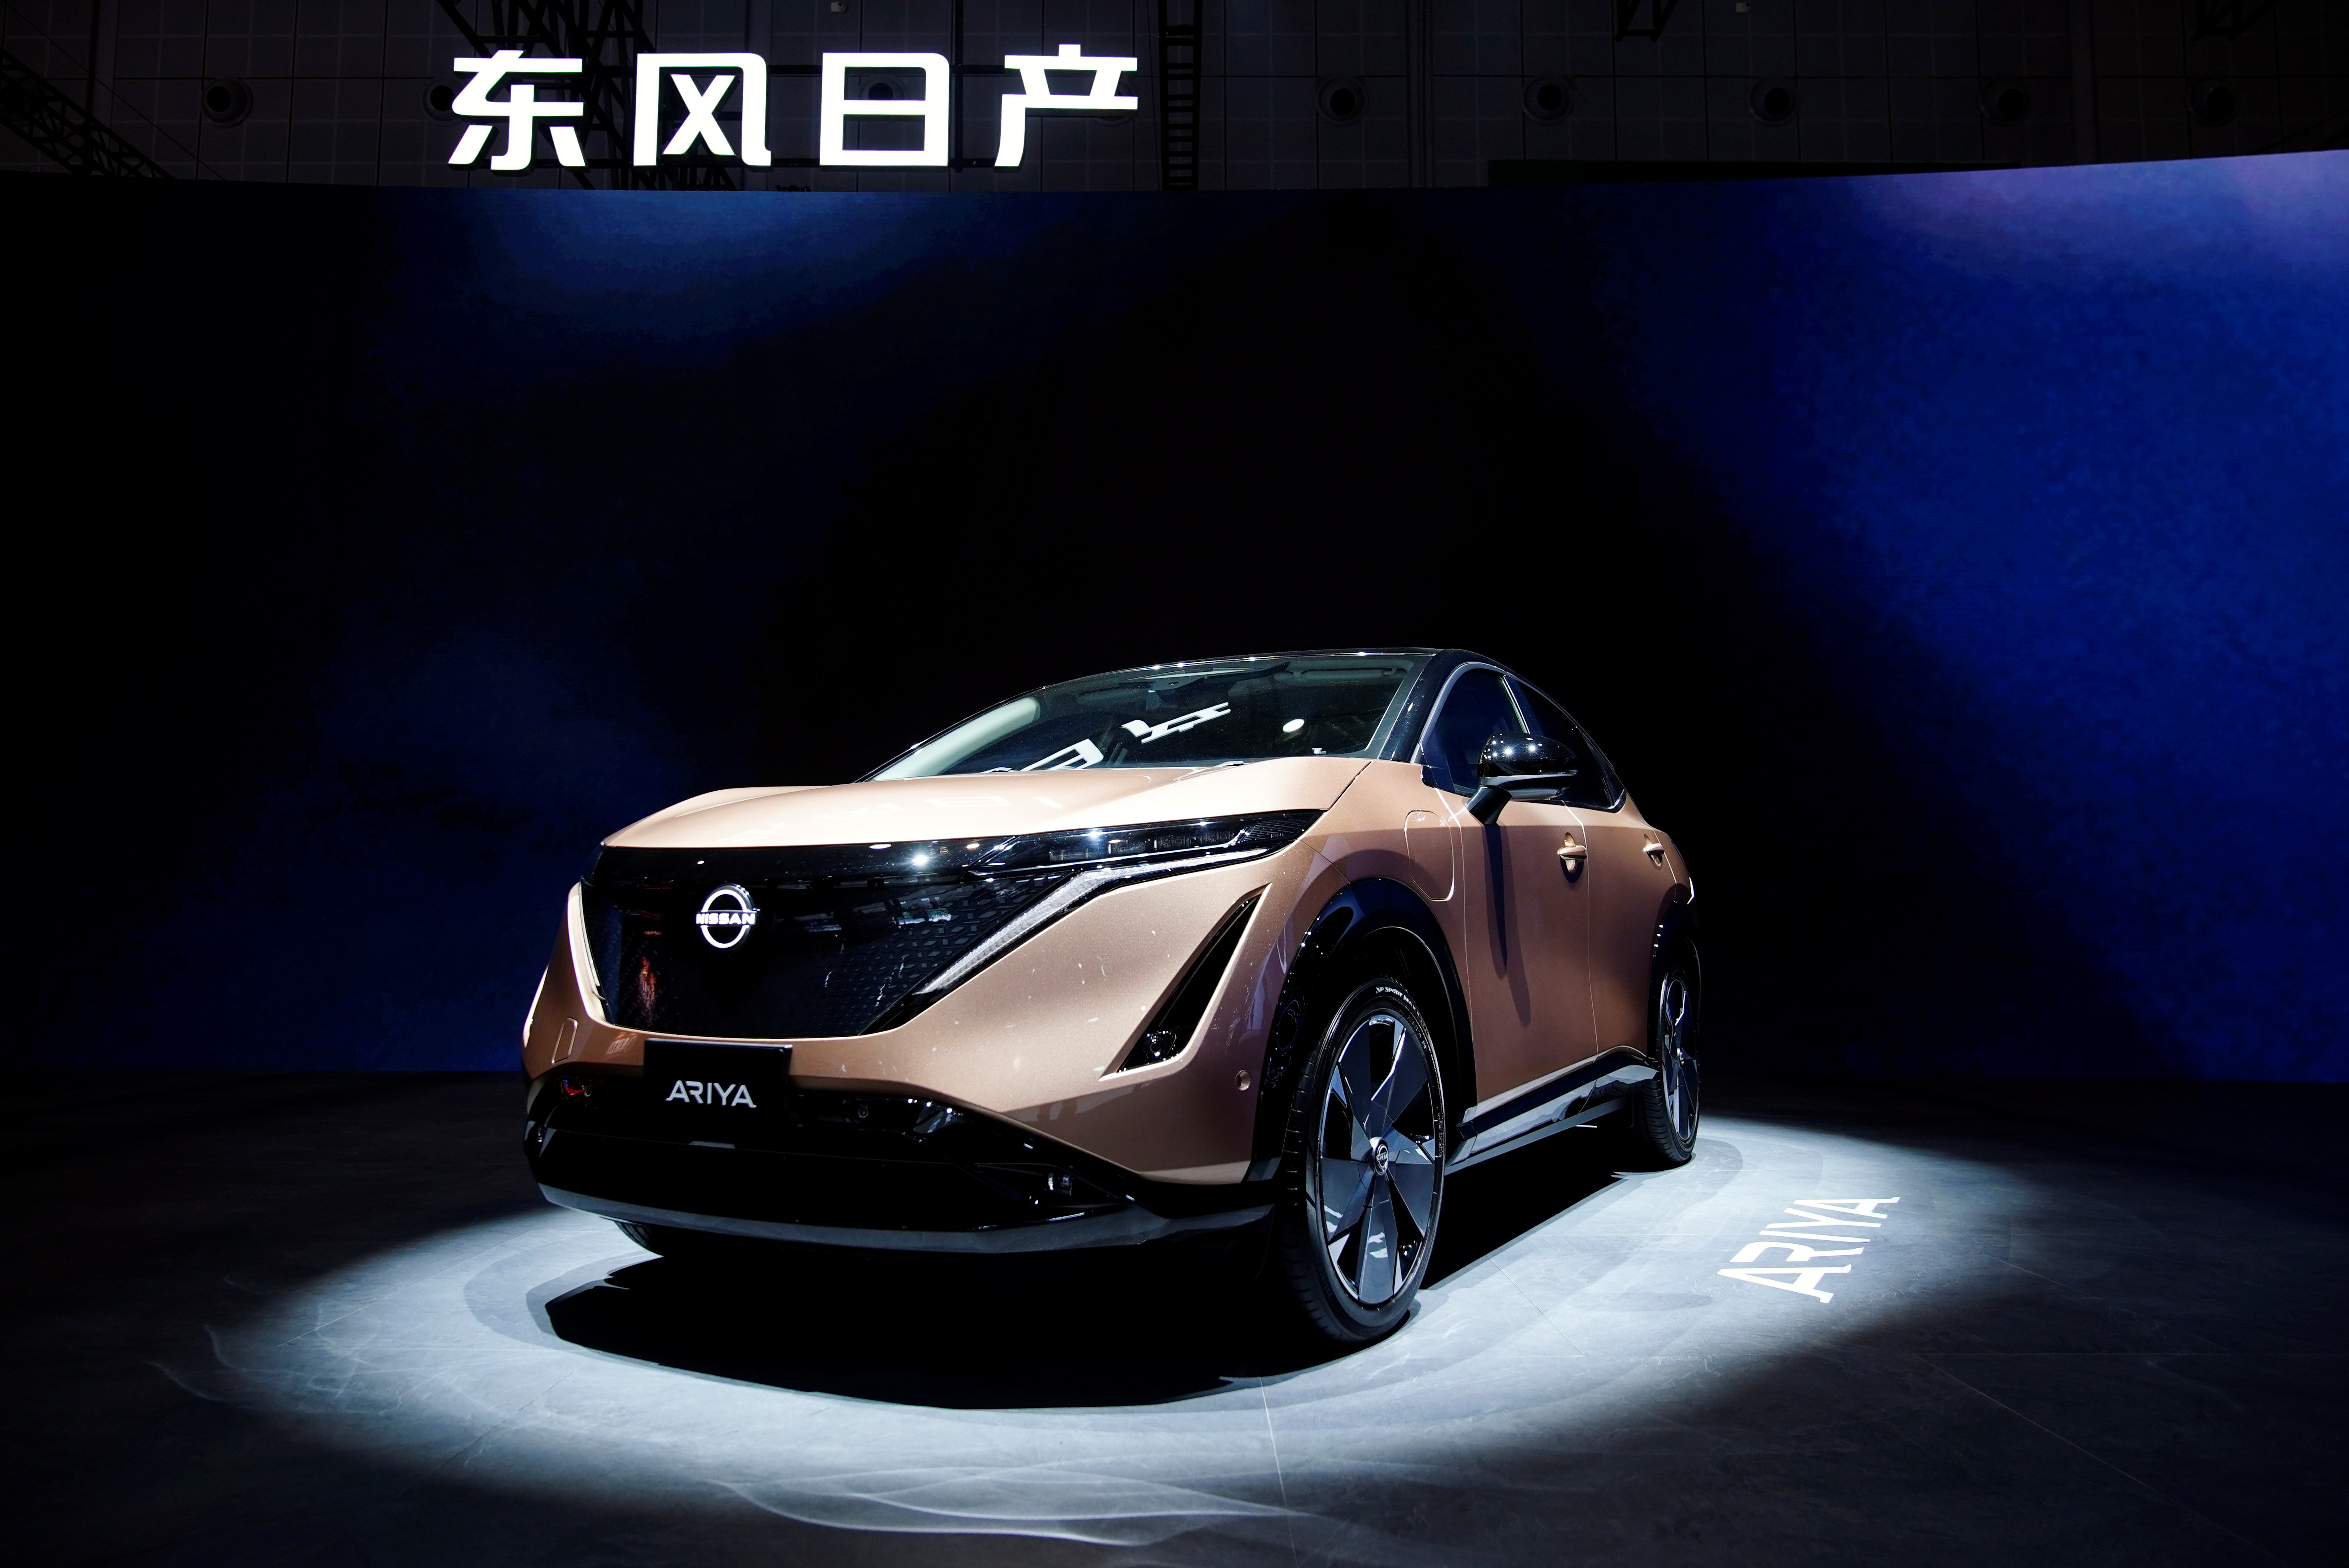 A Nissan Ariya electric vehicle (EV) is seen displayed at the Dongfeng Nissan booth during a media day for the Auto Shanghai show in Shanghai, China April 19, 2021. REUTERS/Aly Song